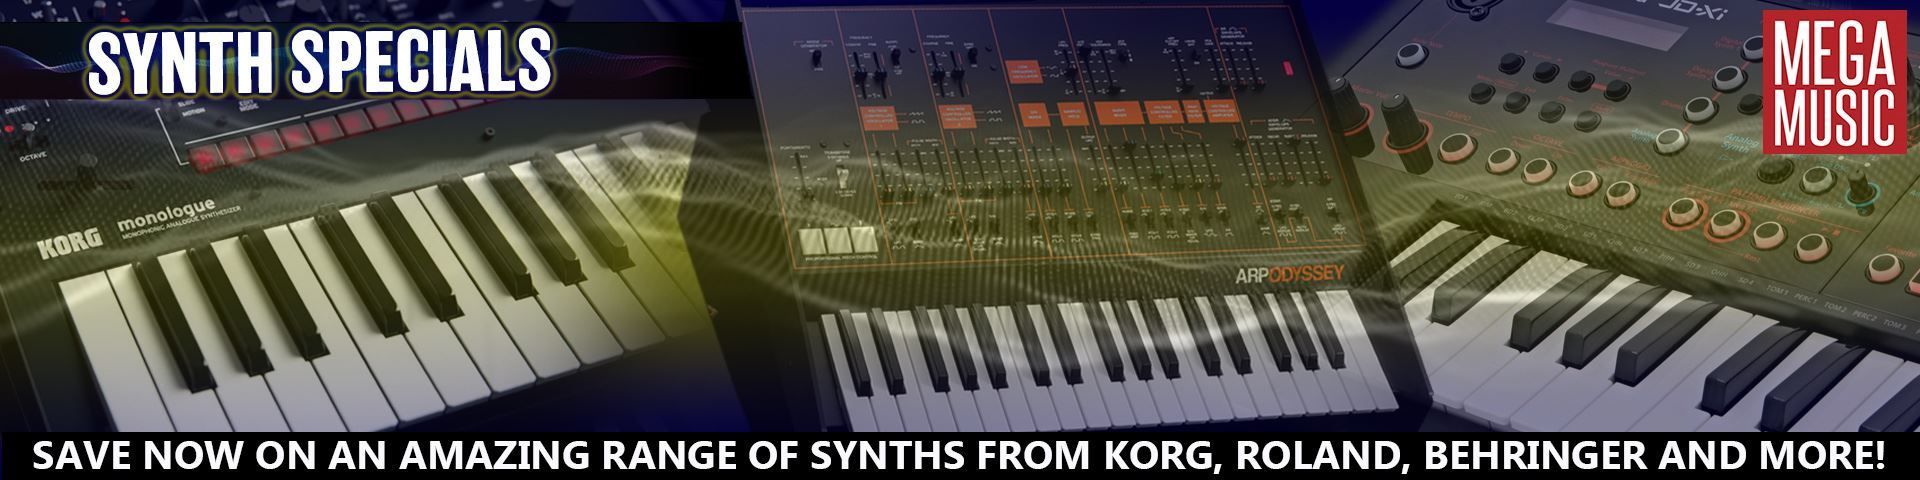 Synthesizers - Perth | Mega Music Online